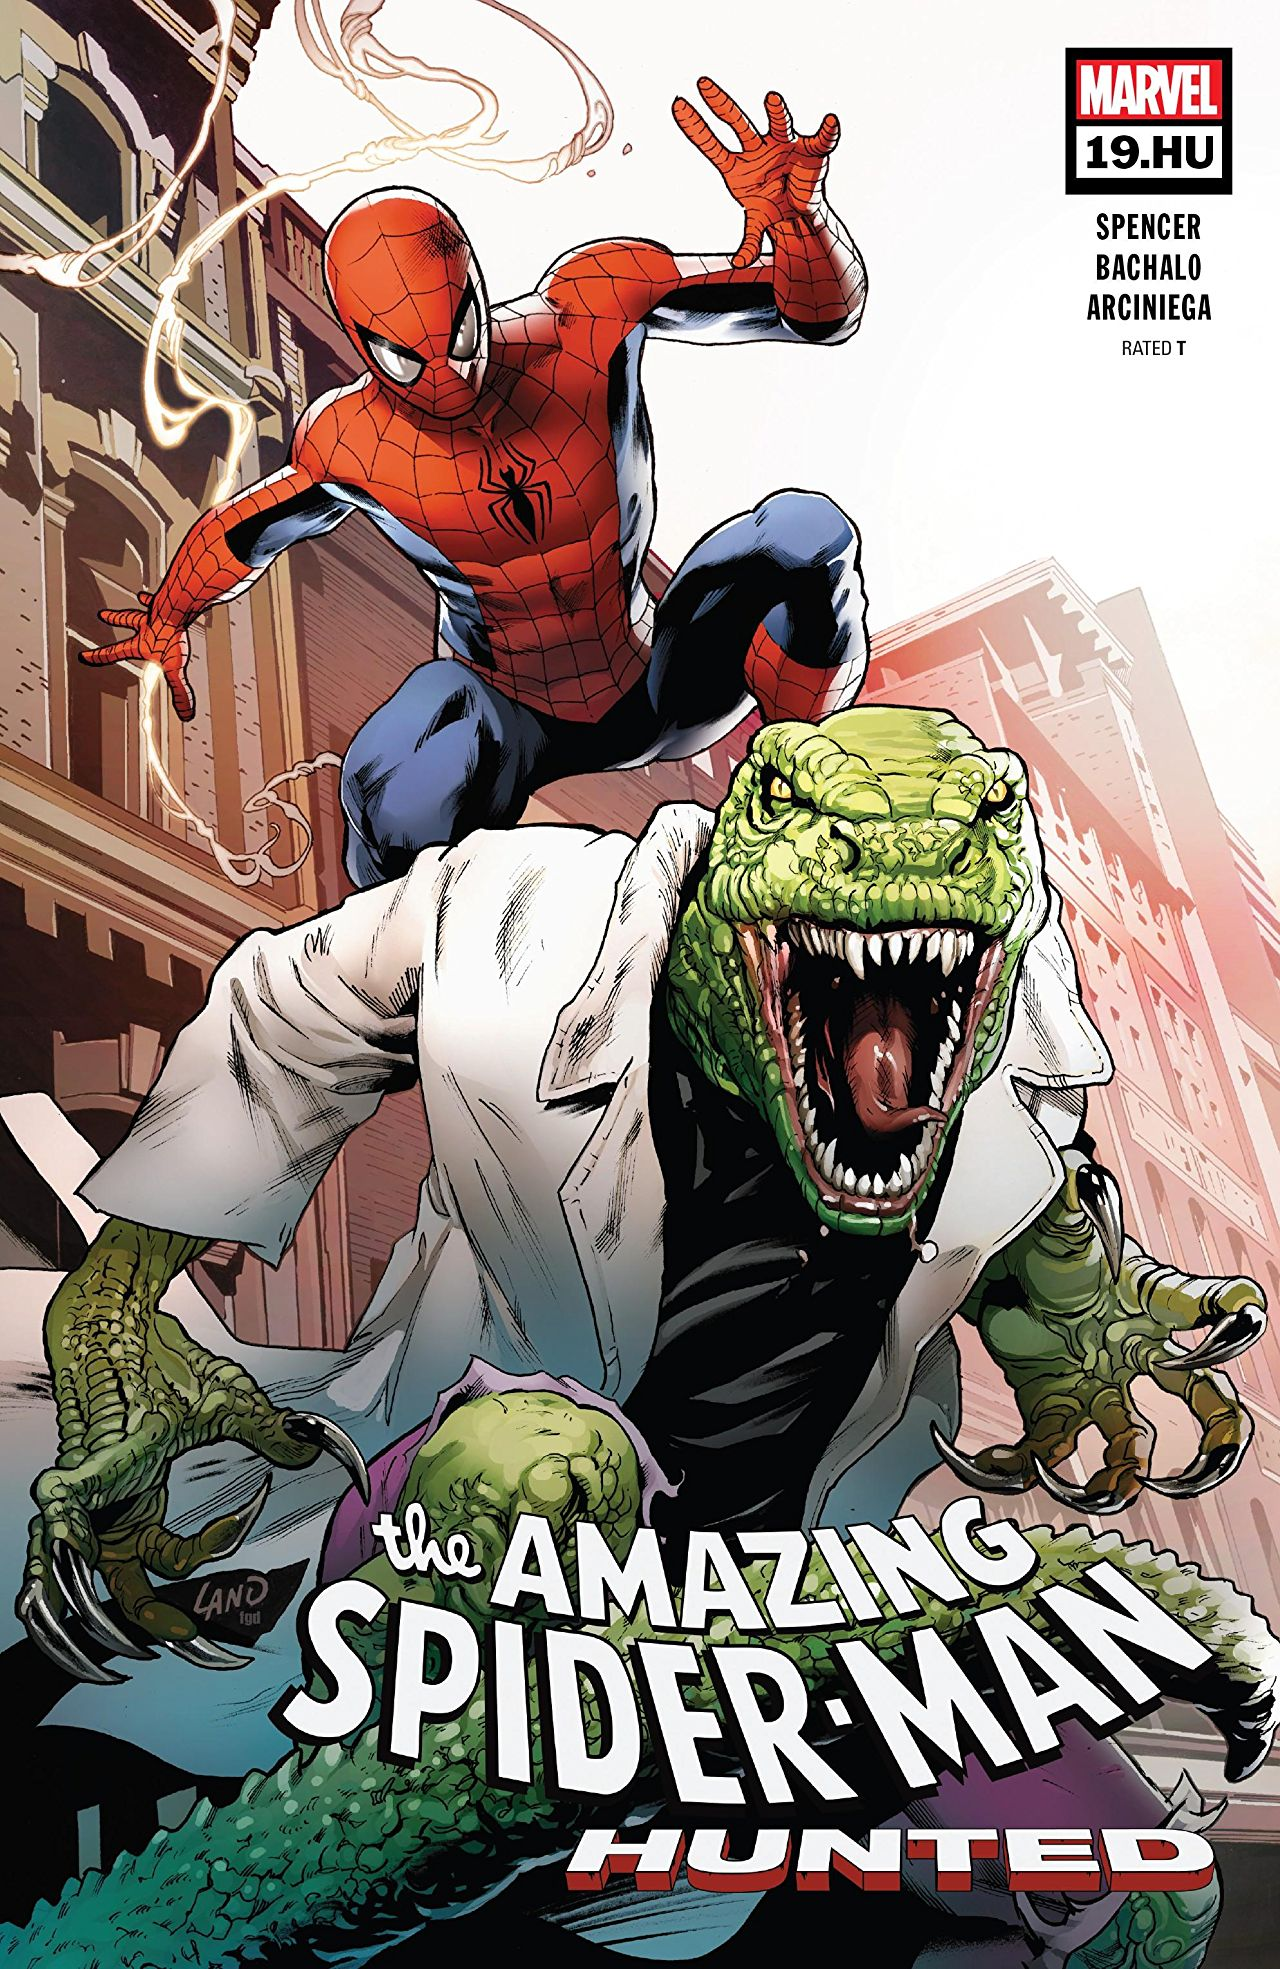 Marvel Preview: Amazing Spider-Man #19.HU